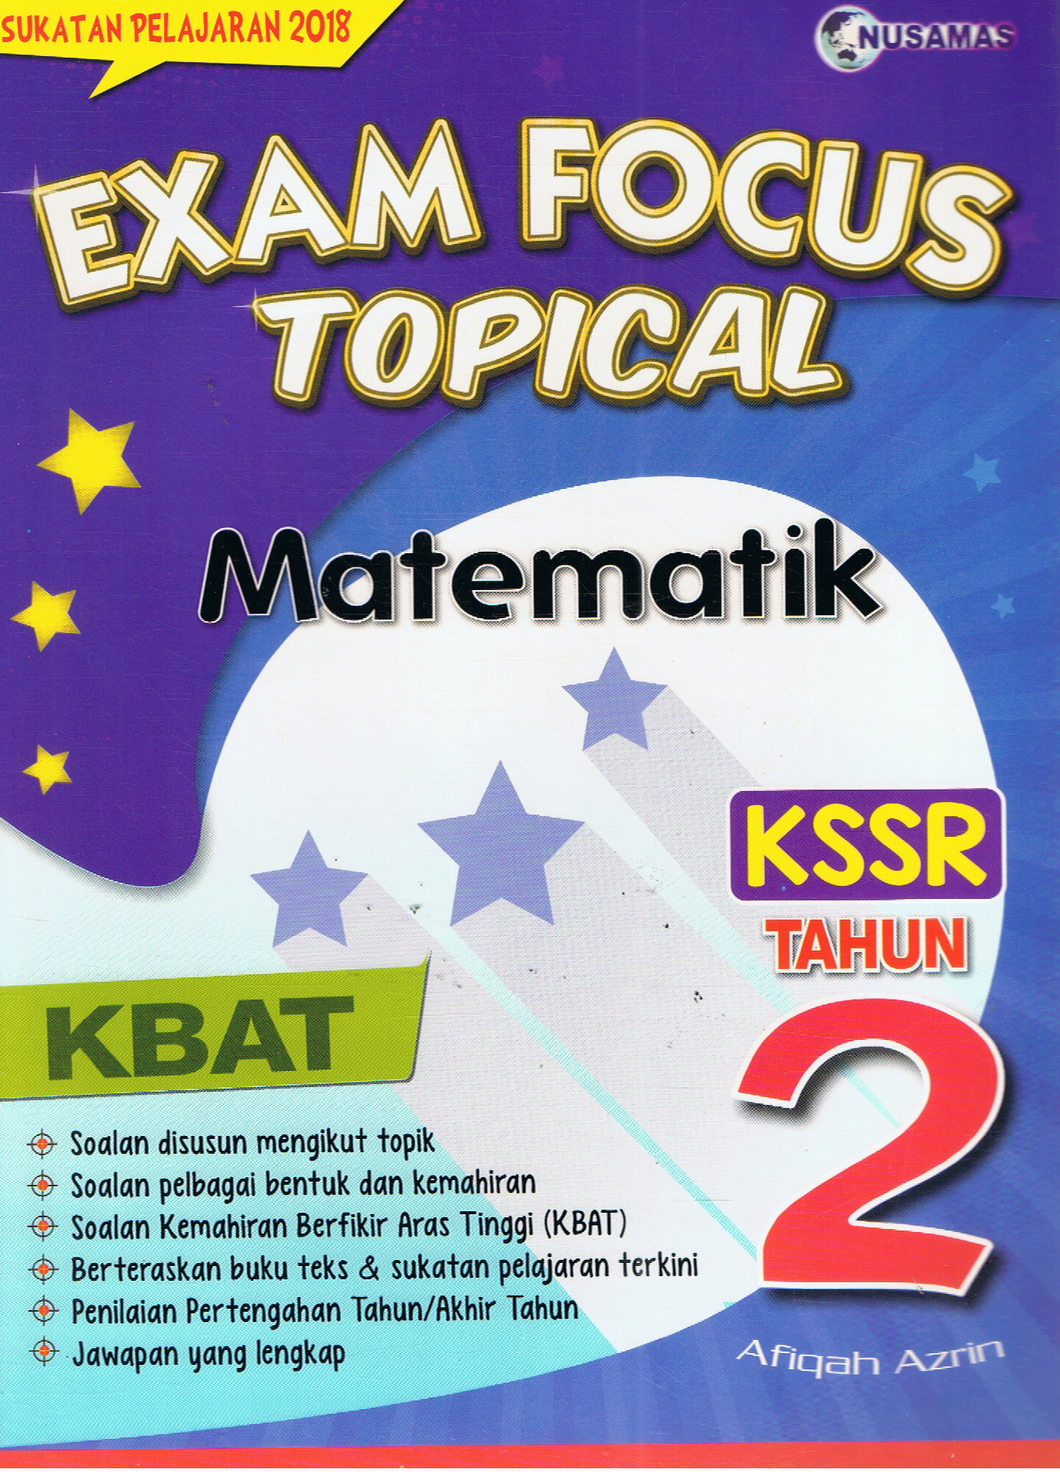 Nusamas-Exam Focus Topical: Matematik Tahun 2-9789674369835-BukuDBP.com